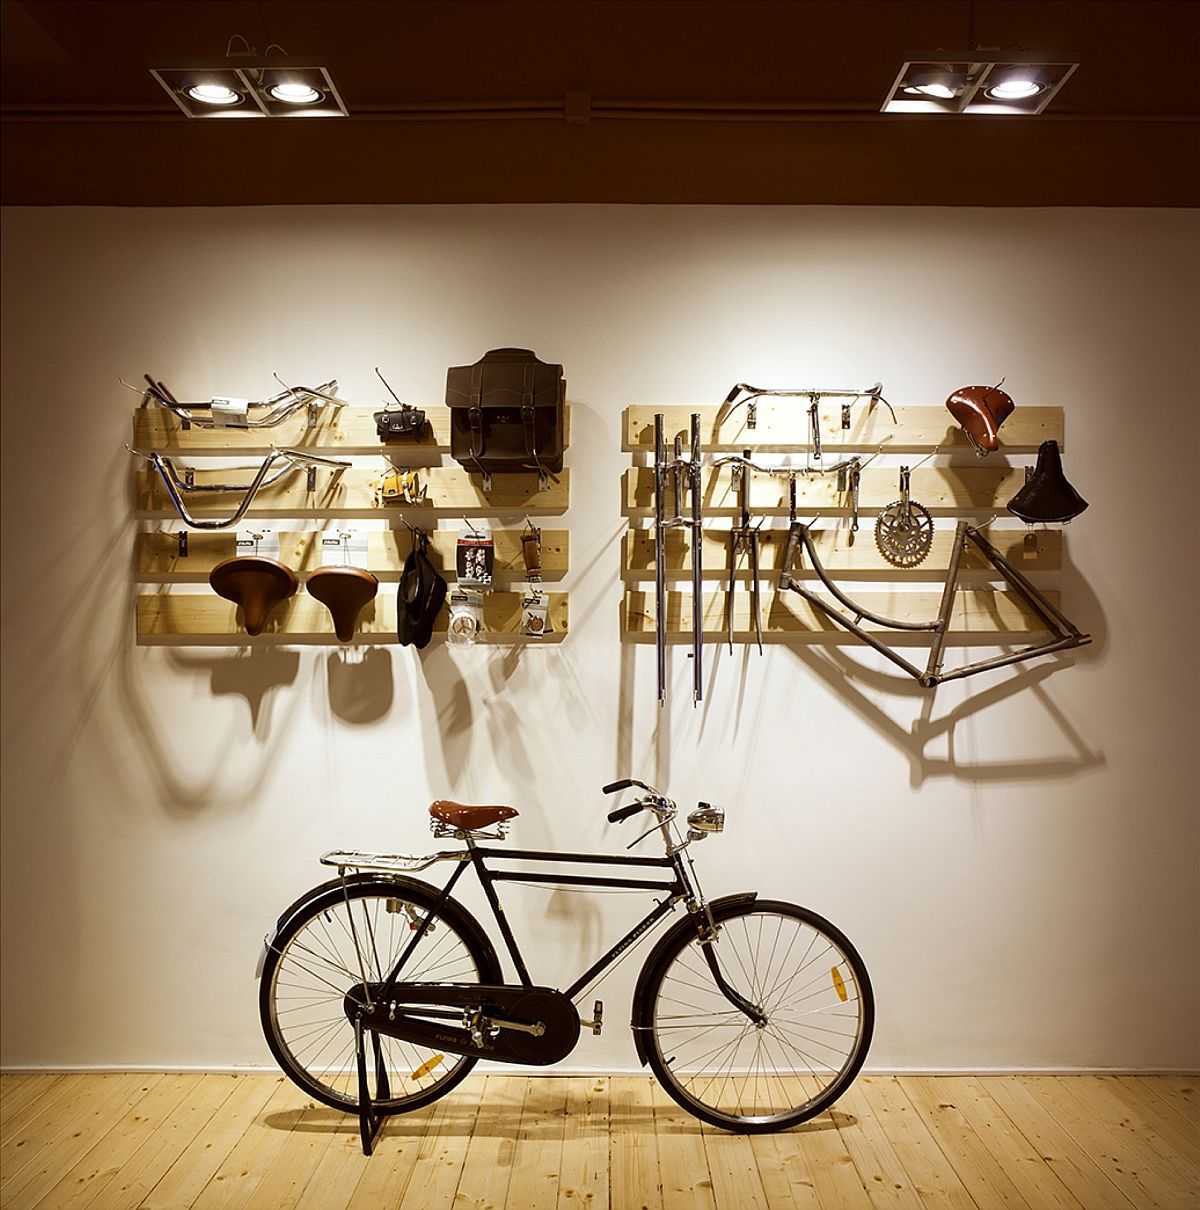 Goregous gallery inside the cycle shop